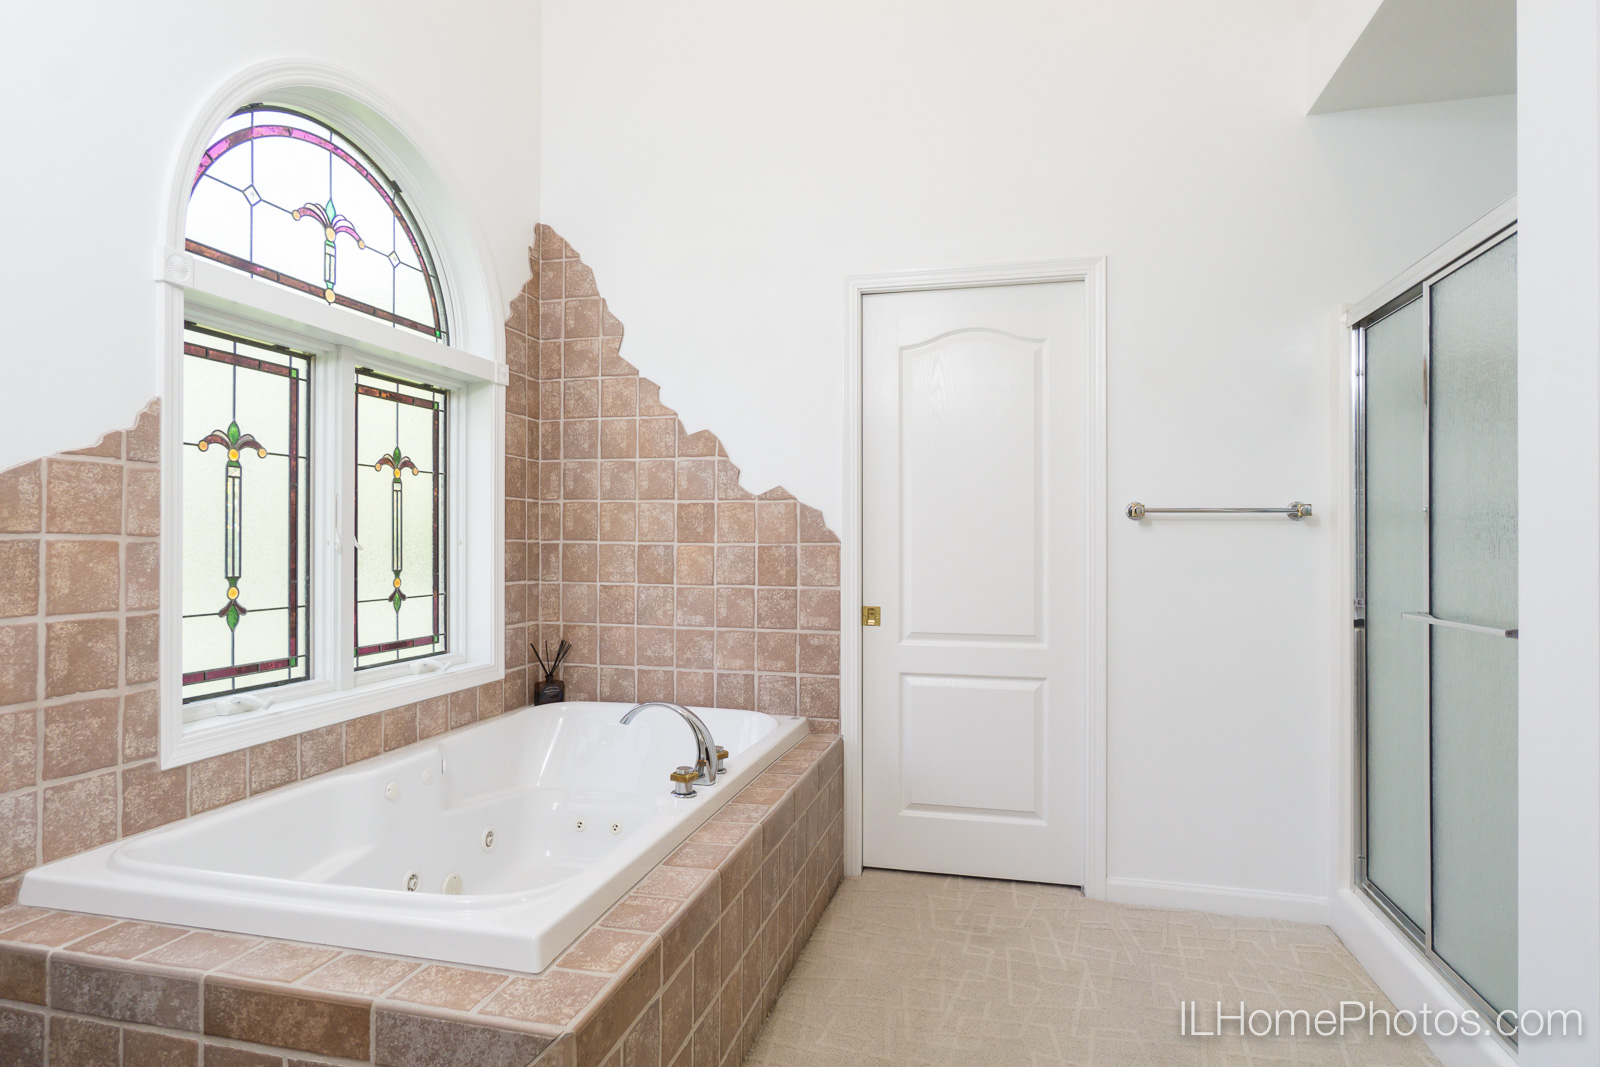 Interior master bathroom photograph for real estate in Pekin/Peoria :: Illinois Home Photography by Michael Gowin, Lincoln, IL